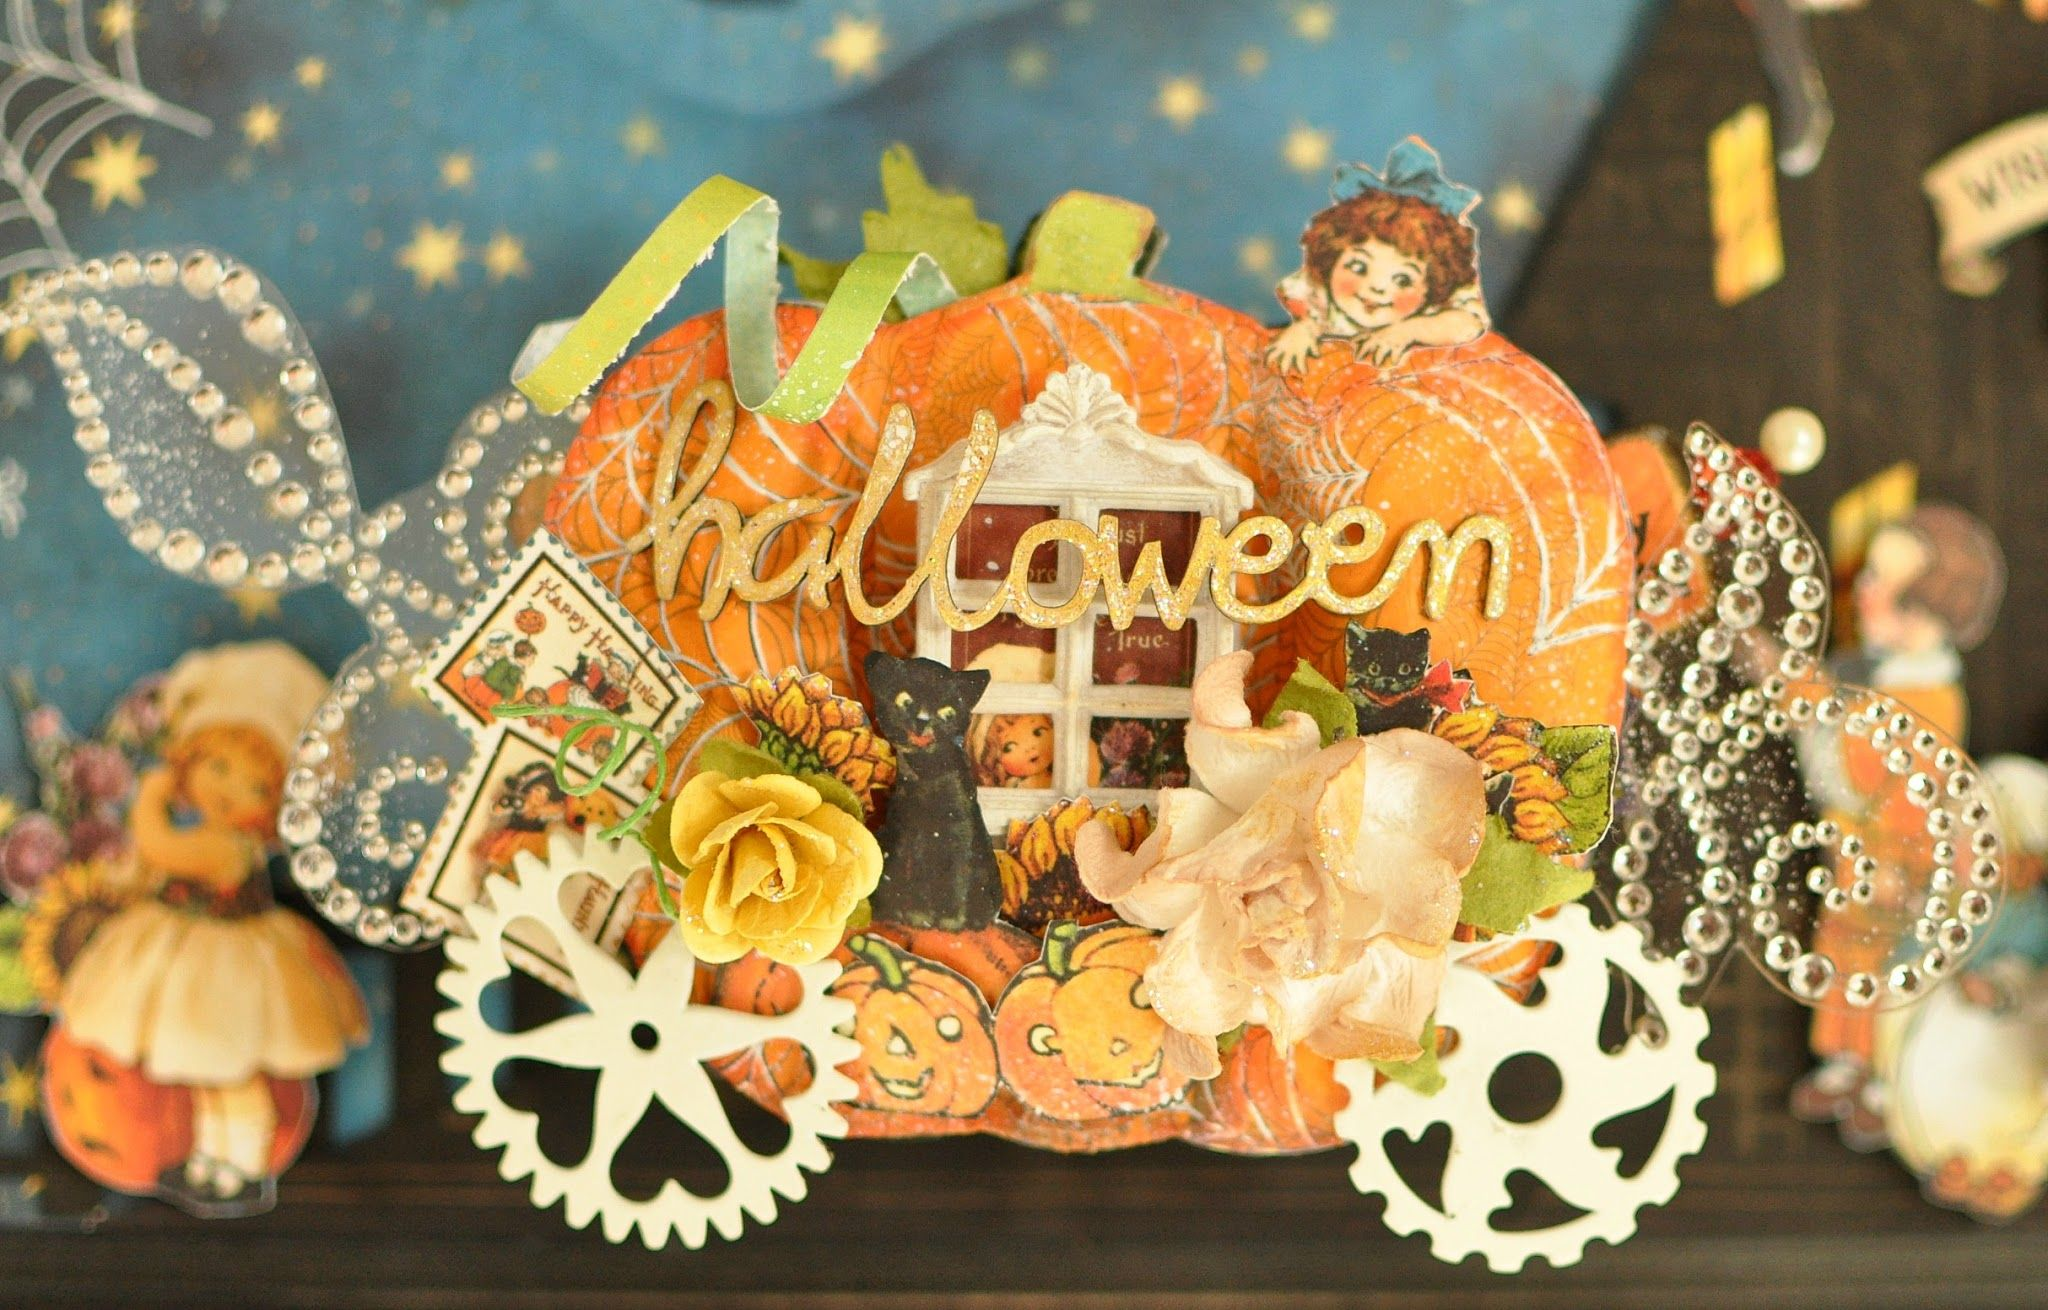 This is a minibook that themed a pumpkin carriage.